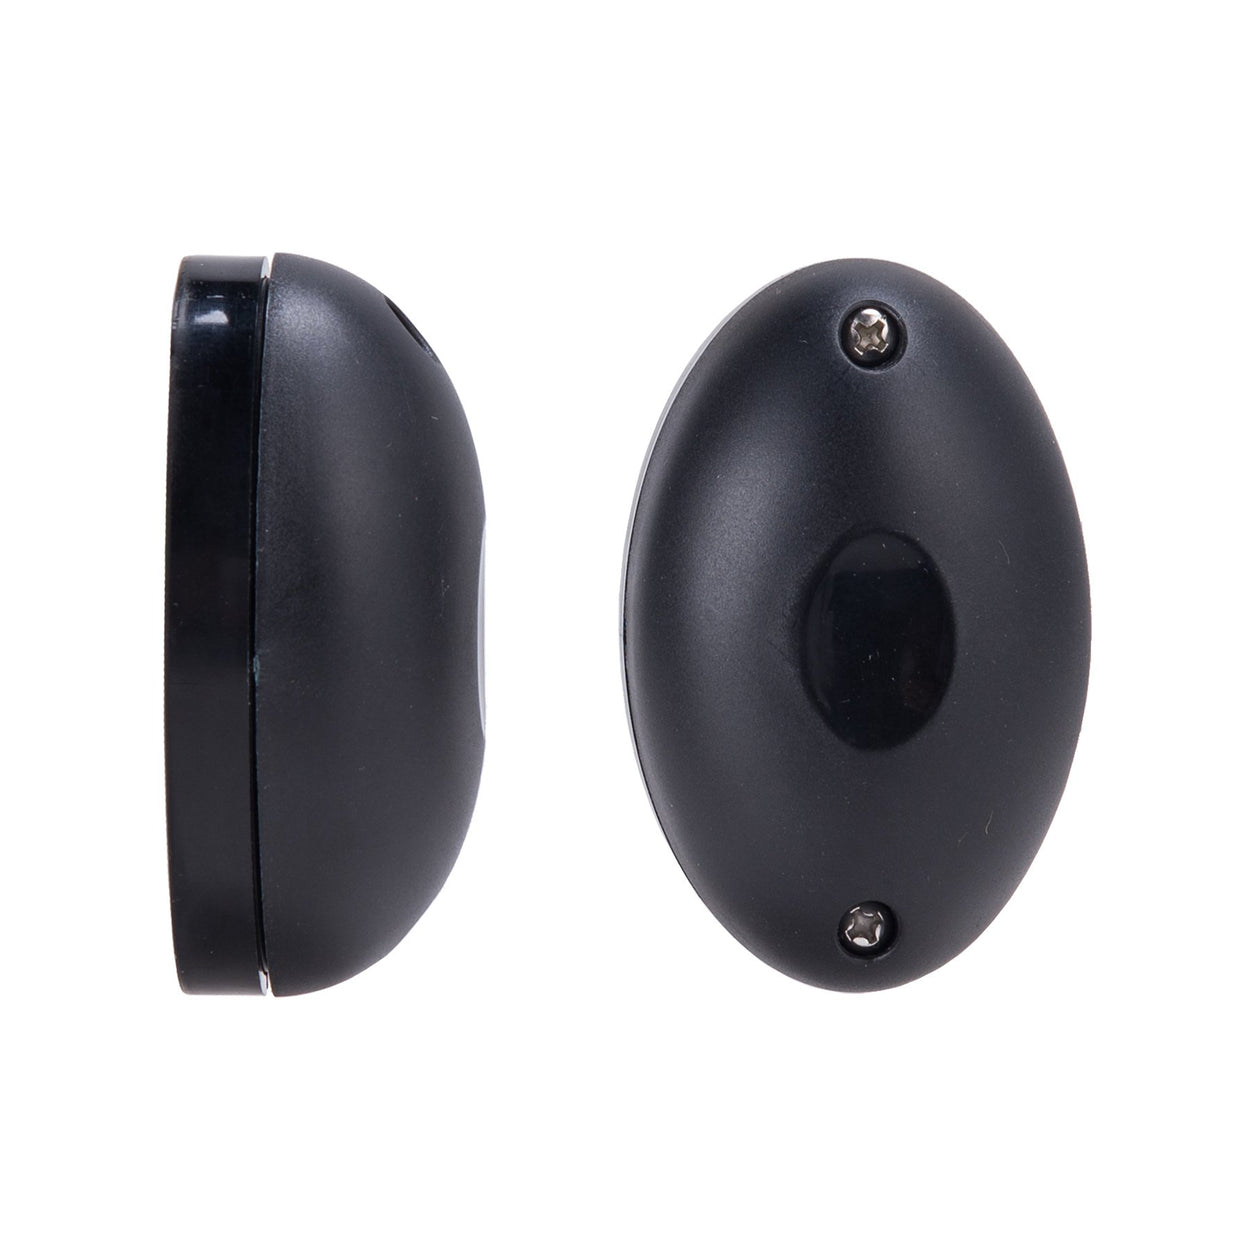 Touch Free Infrared Sensor for Sliding Gate Opener - Kaiezen